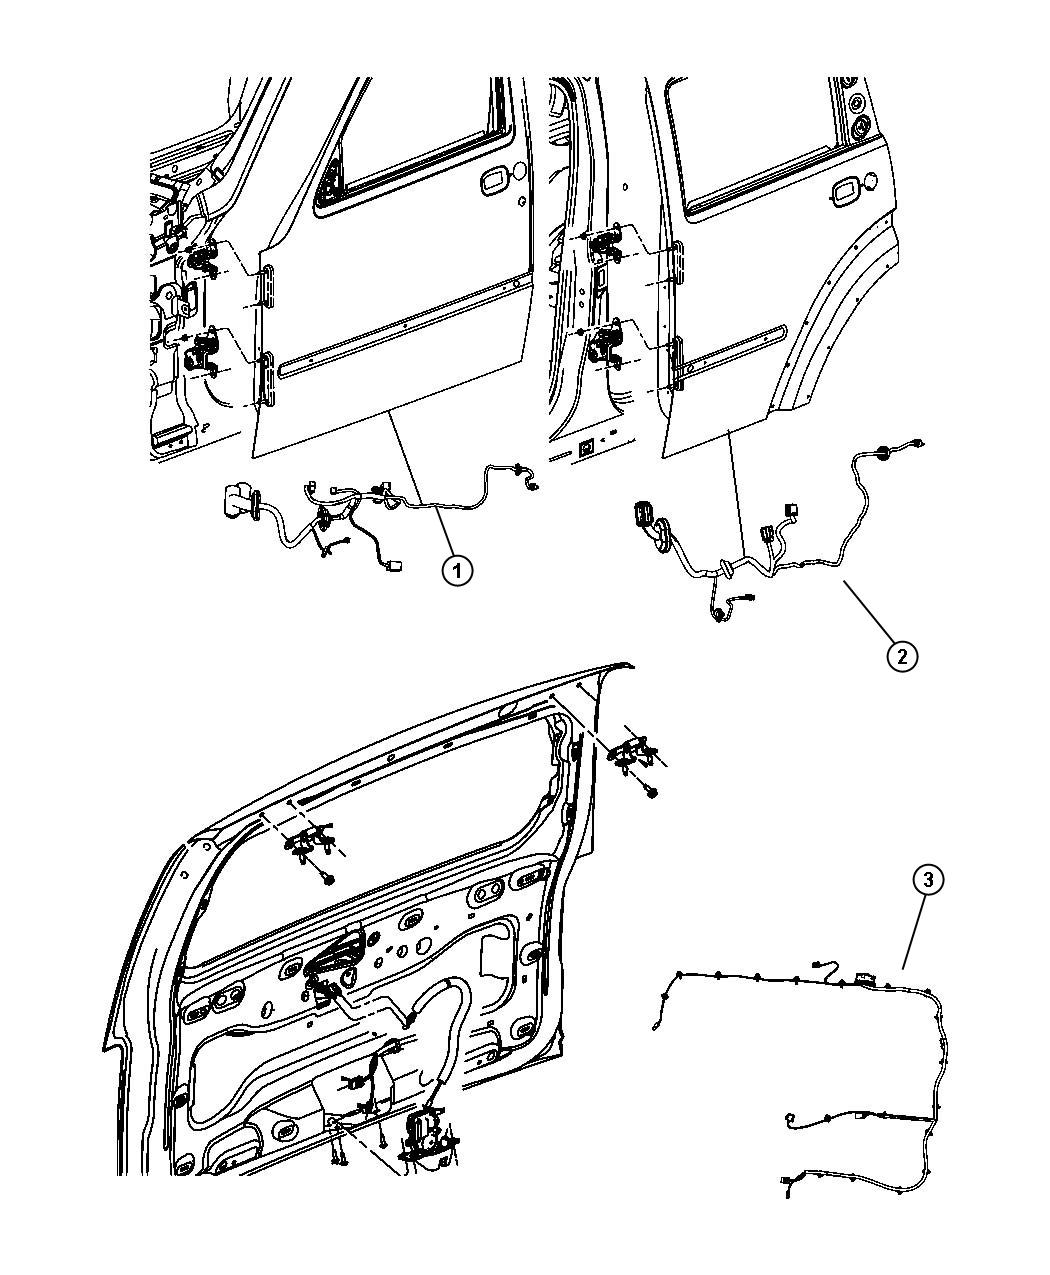 Dodge NITRO Wiring. Right. Front door. [jp3], [jp3] rhd